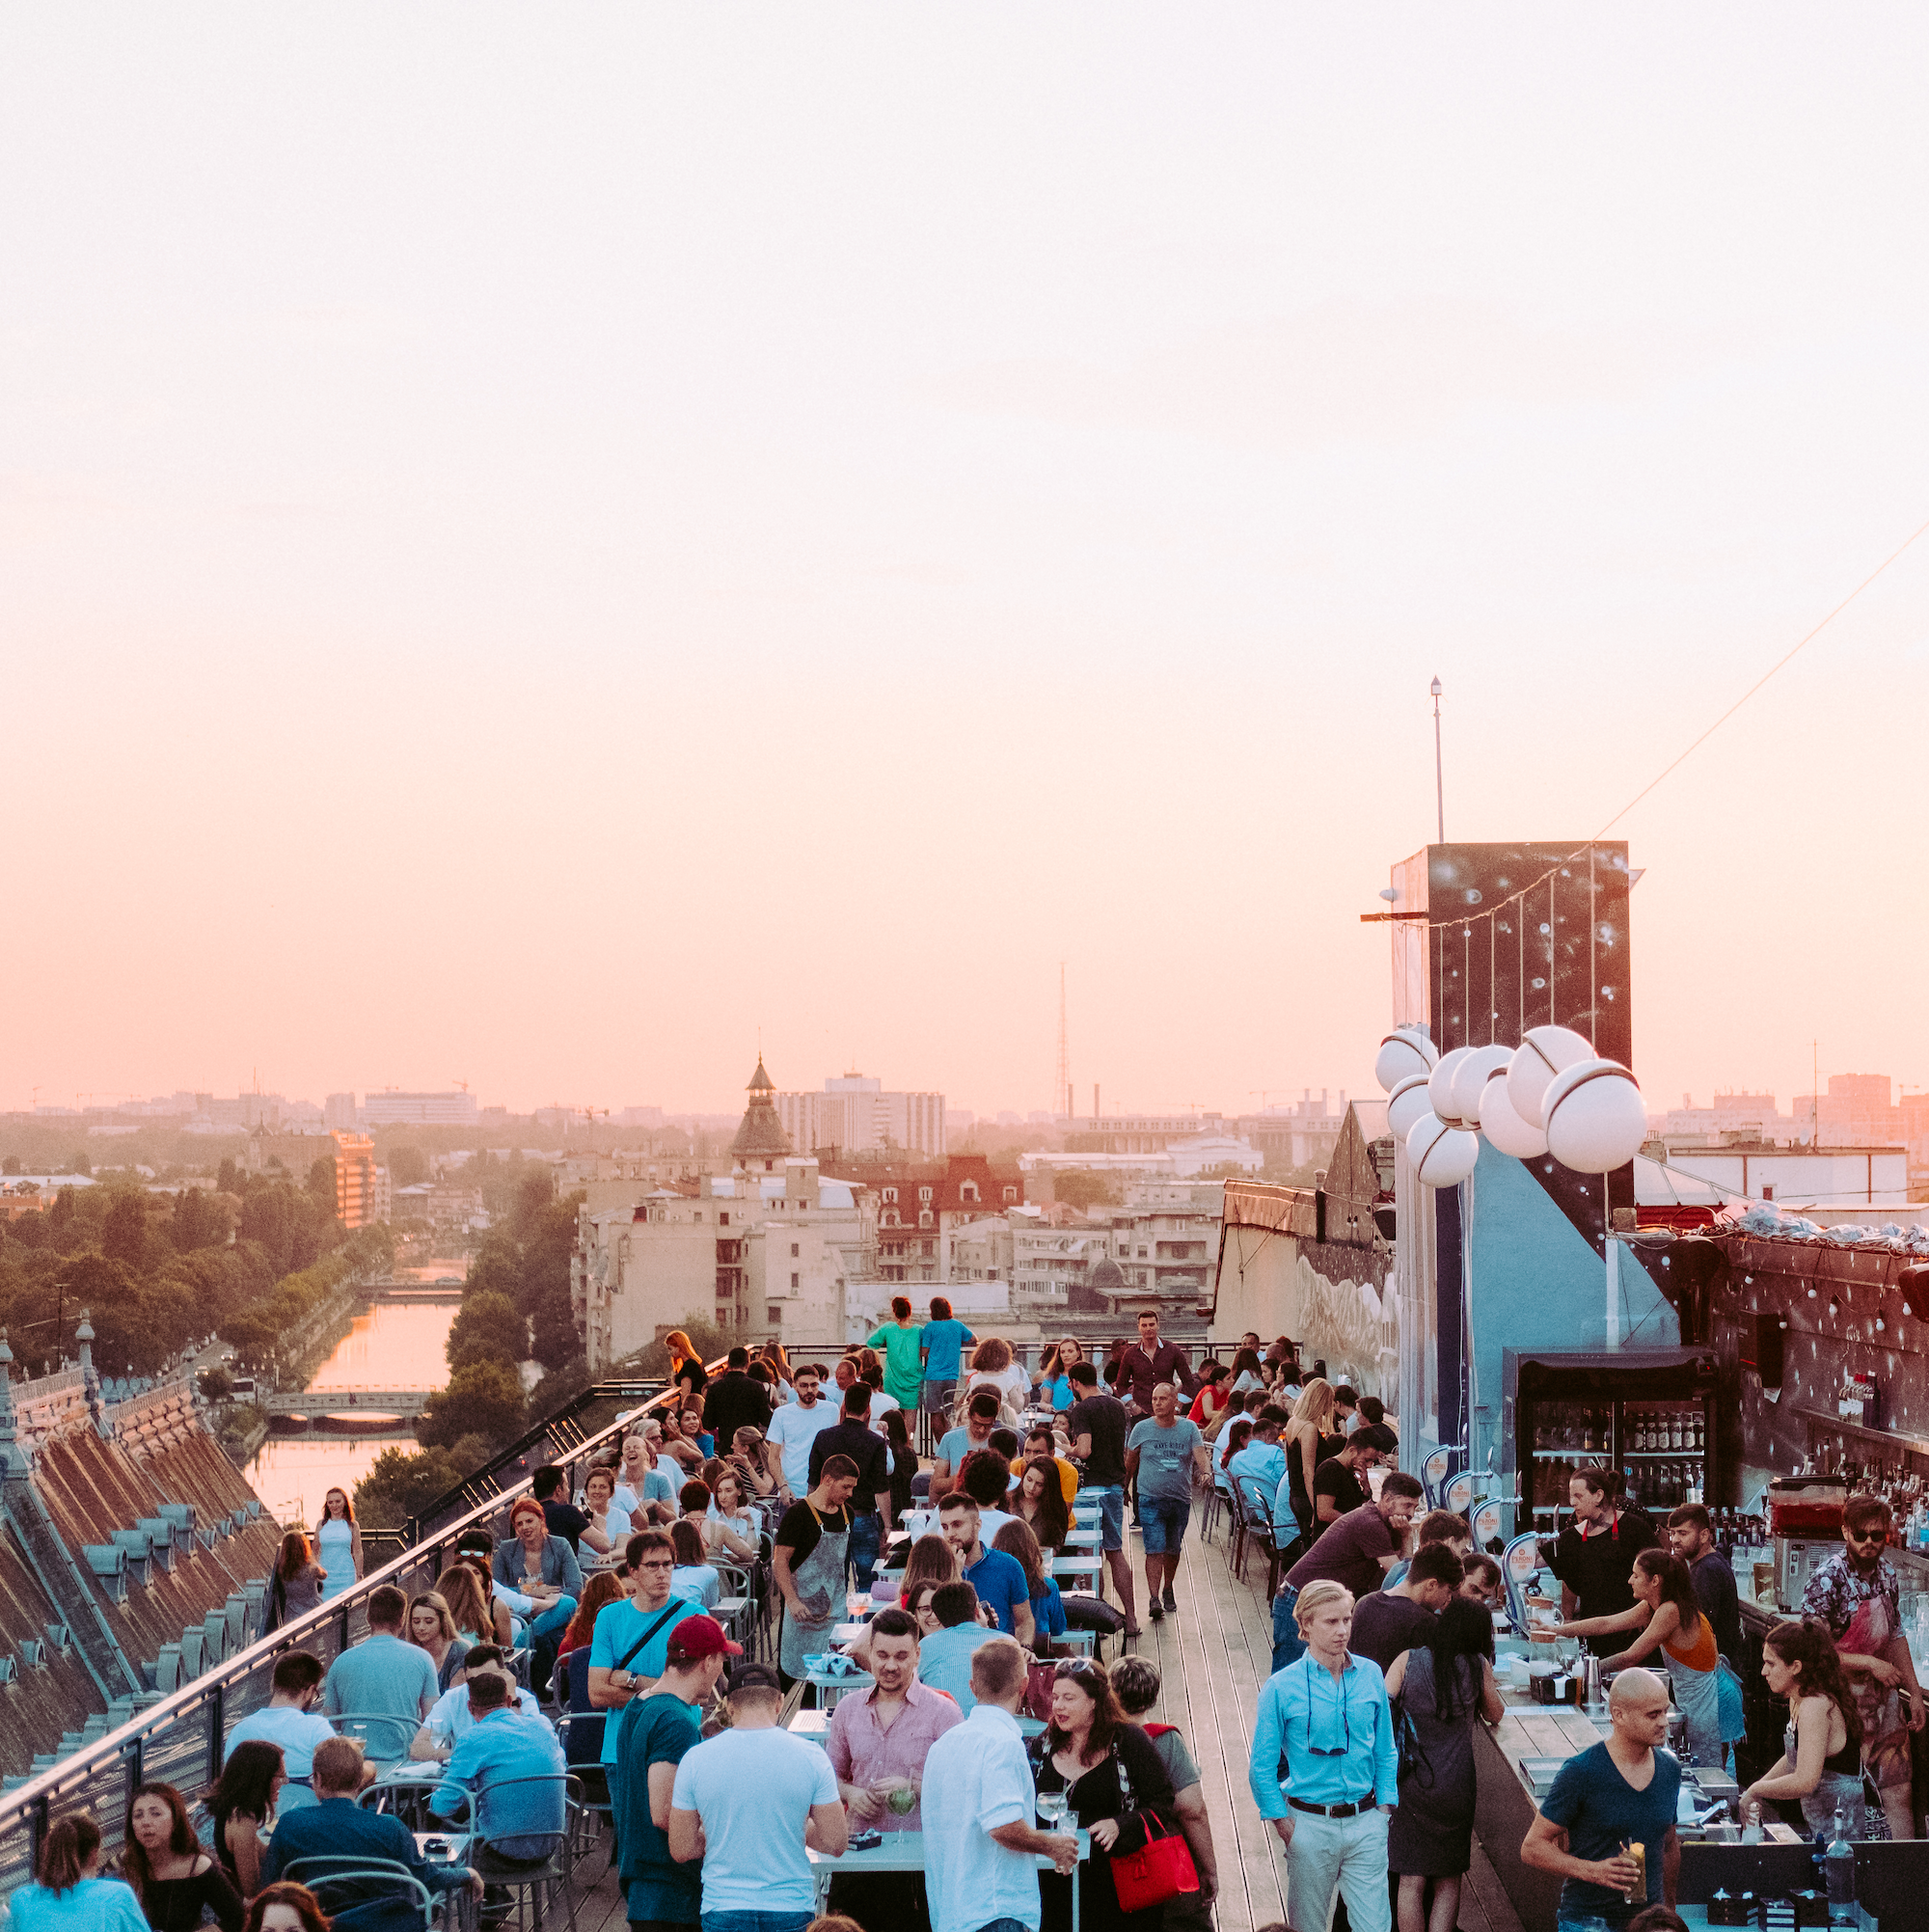 CONTEMPORARY CULTURE - You'll take an inspiring deep dive into the underground arts and music scenes of two major creative hubs in Romania: Bucharest and Cluj-Napoca. Both with their own unique character, history, and cultural influences, they're two of the major contemporary heartbeats of the country.